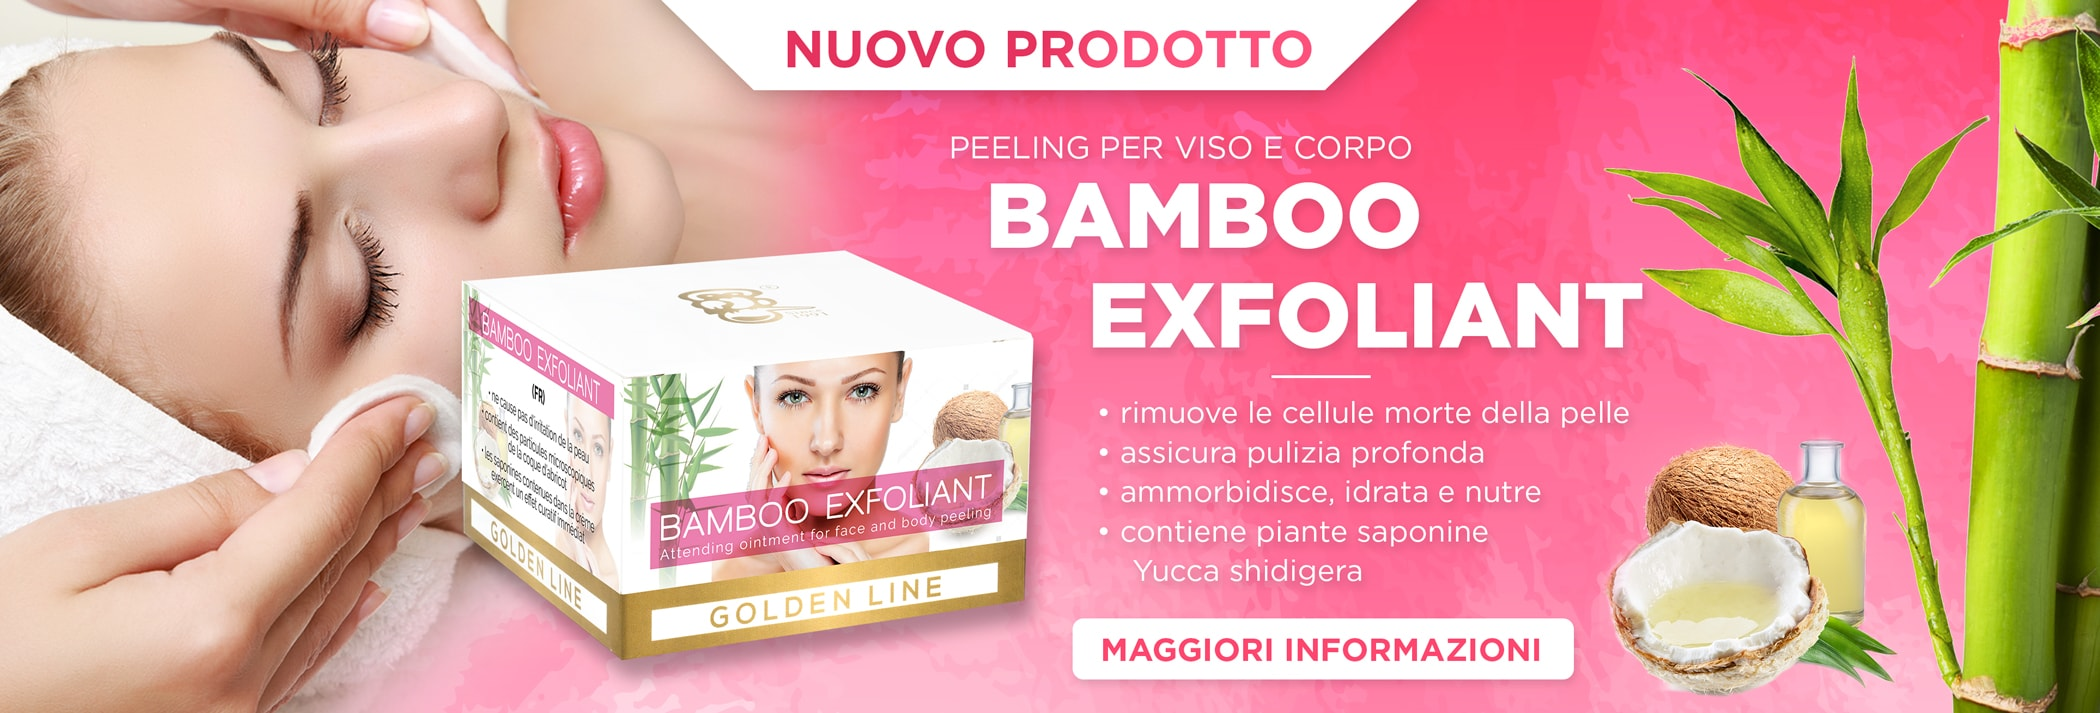 Bamboo-exfoliant-banner-IT